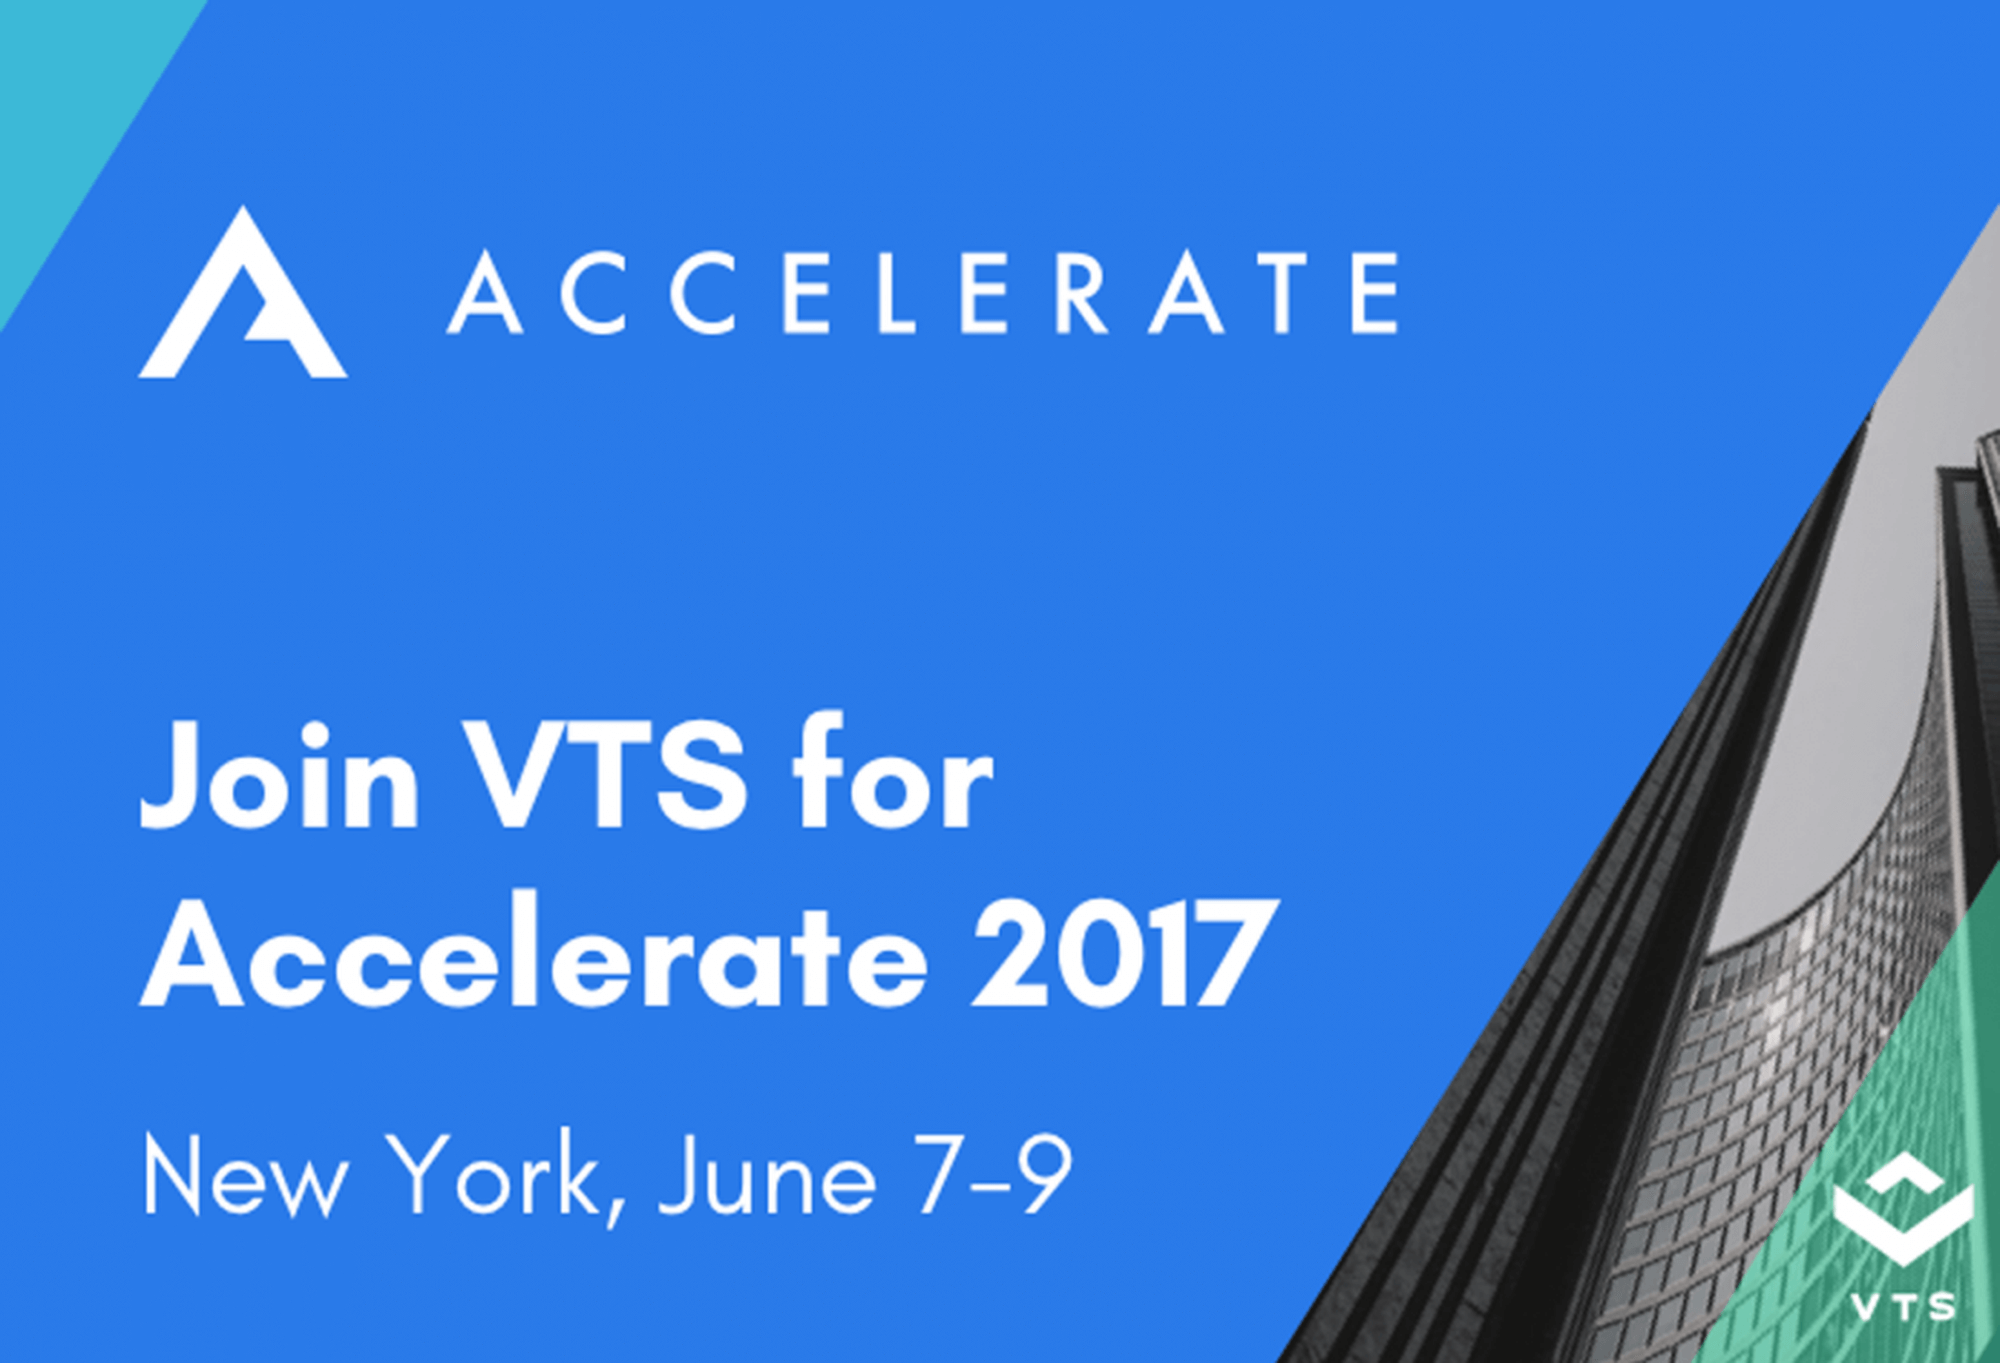 VTS 2018 Accelerate conference